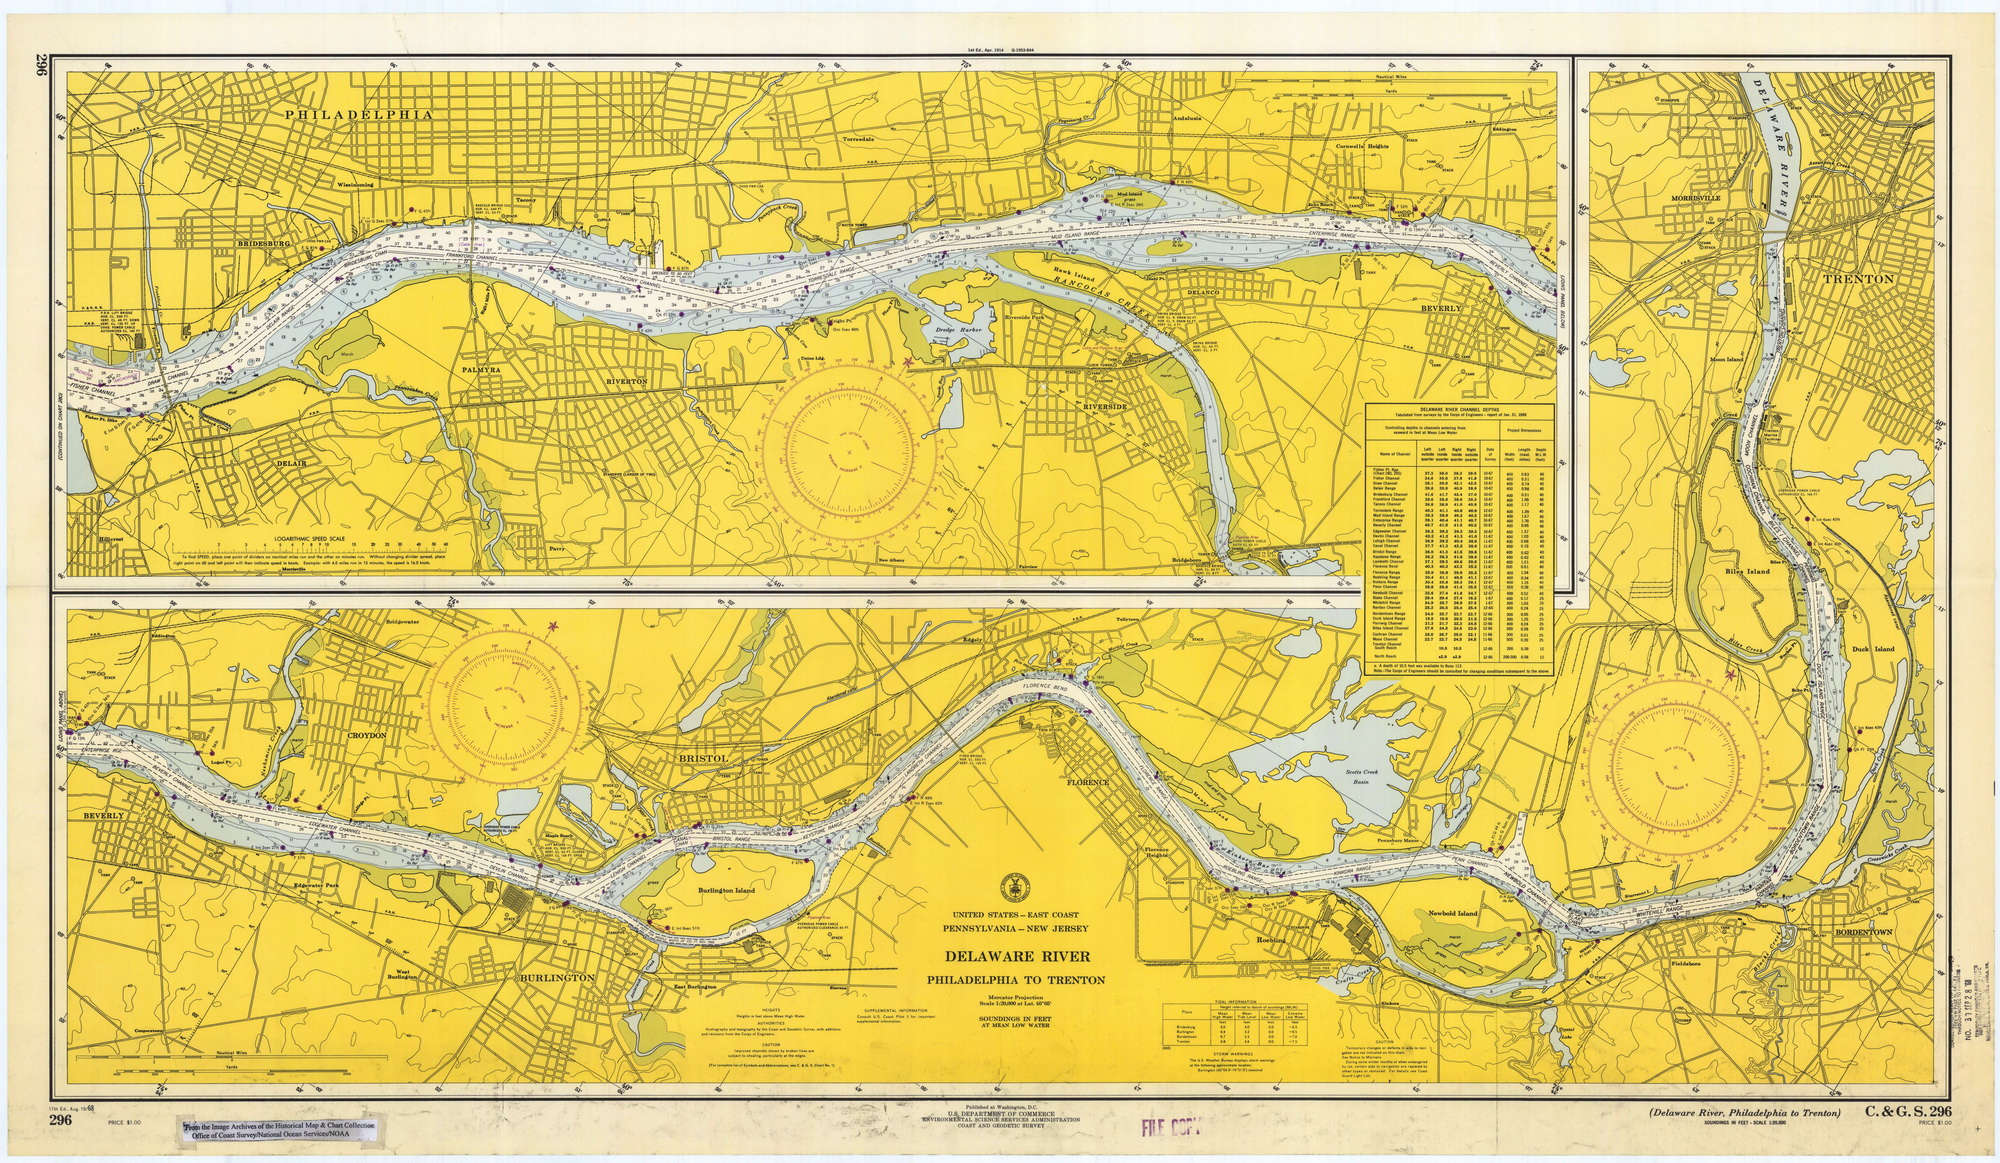 Delaware River Philadelphia to Trenton 1968 Old Map Nautical Chart